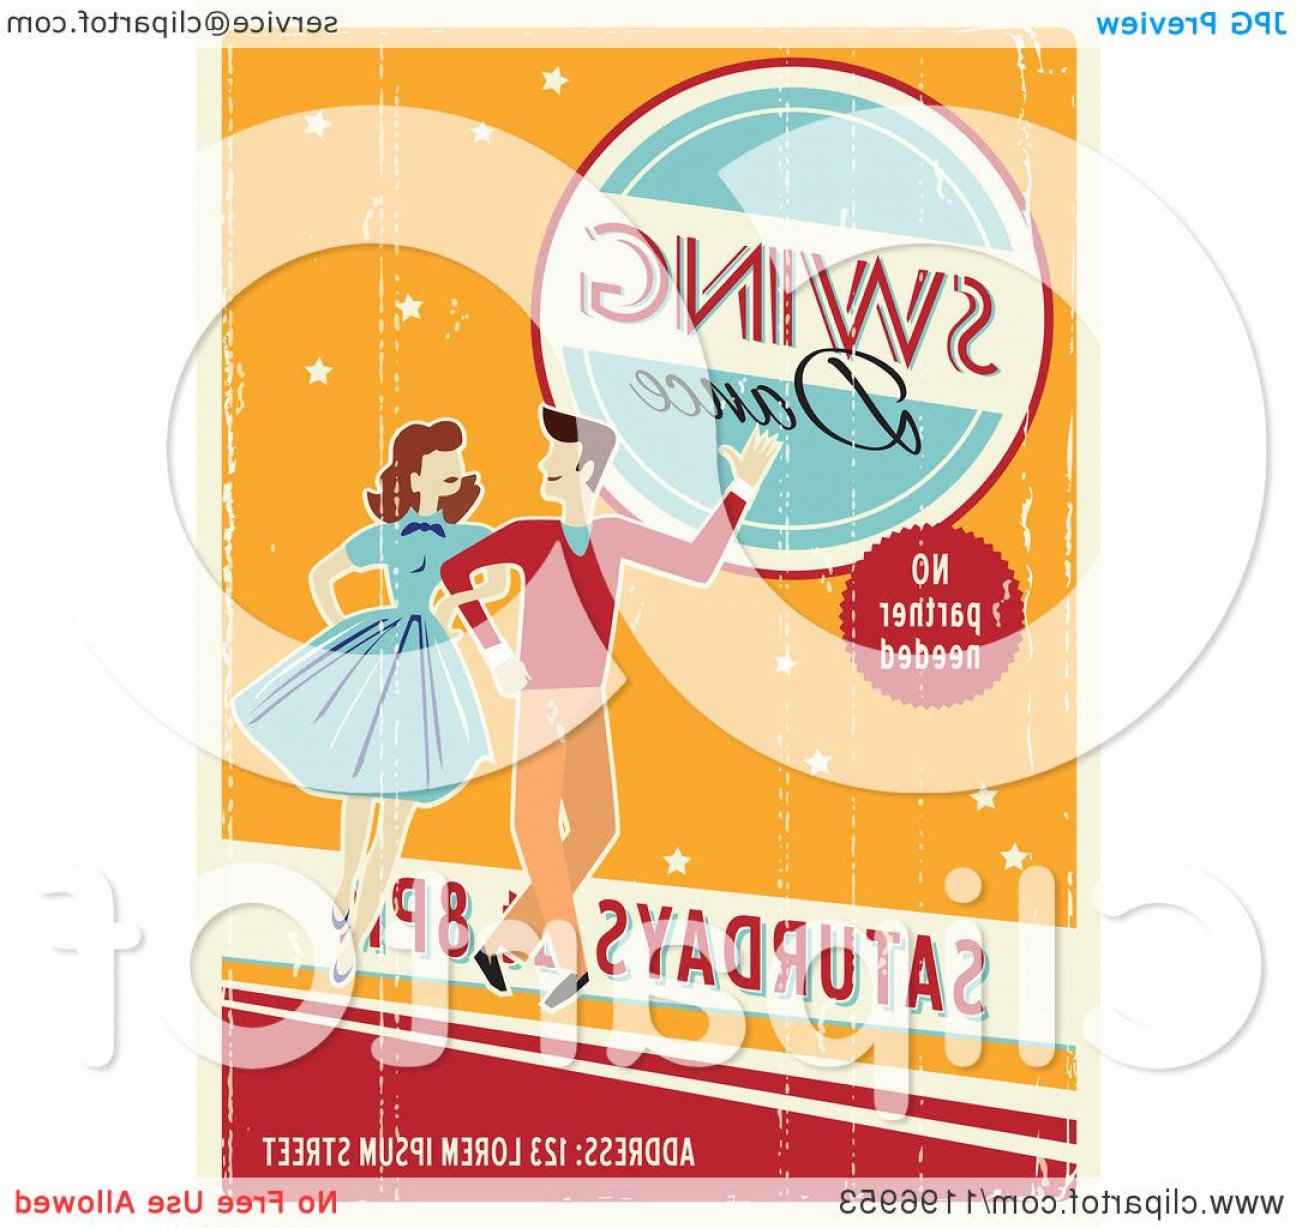 Vector Swing Dancers: Retro Distressed Swing Dance Poster With Sample Text